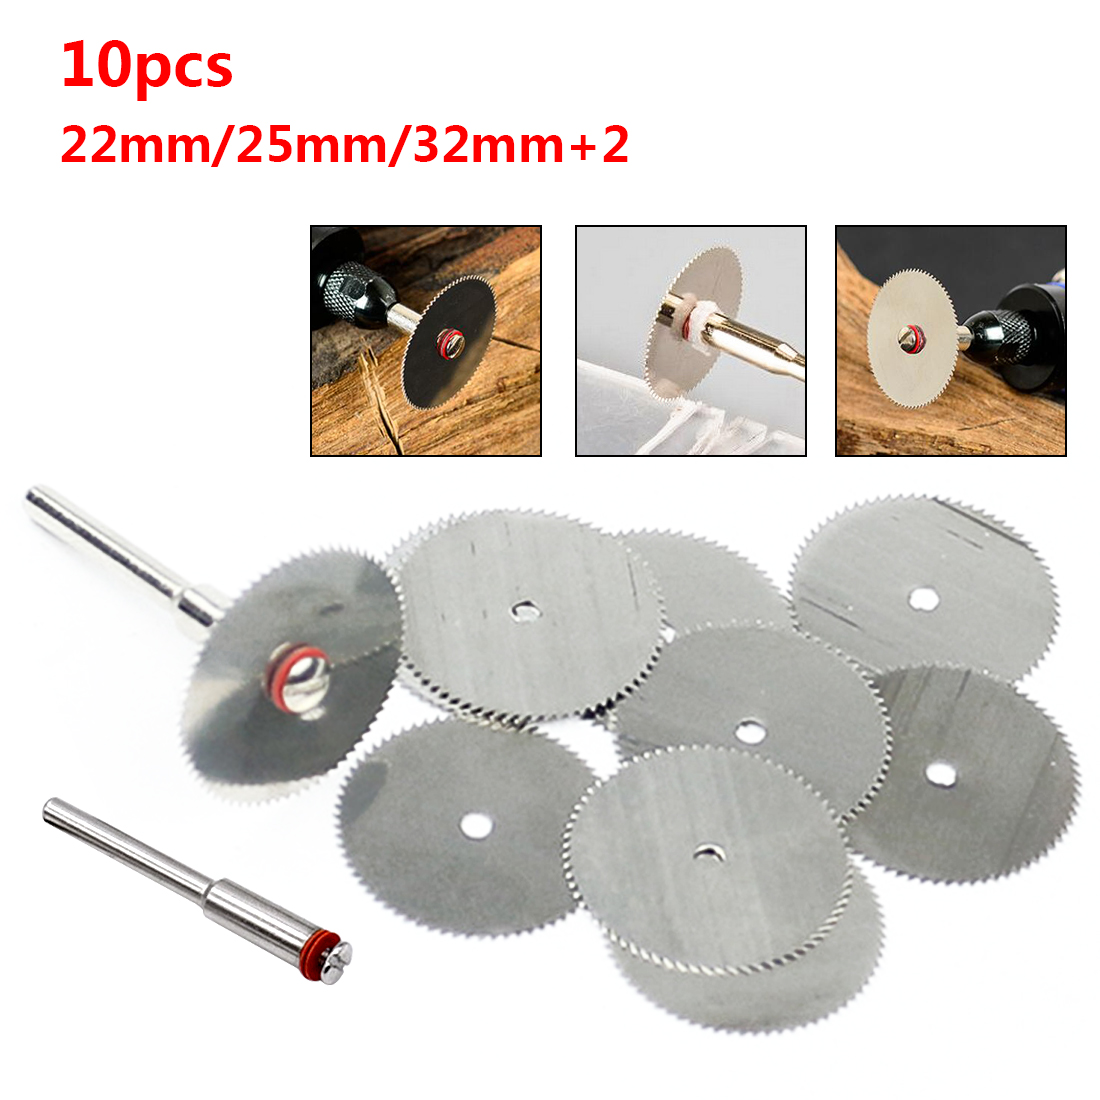 10PCS/SET Wood Saw Blade Disc + 2 x Rod Dremel Rotary Cutting Tool 22/25/32mm 10PCS/SET Wood Saw Blade Disc + 2 x Rod Dremel Rotary Cutting Tool 22/25/32mm